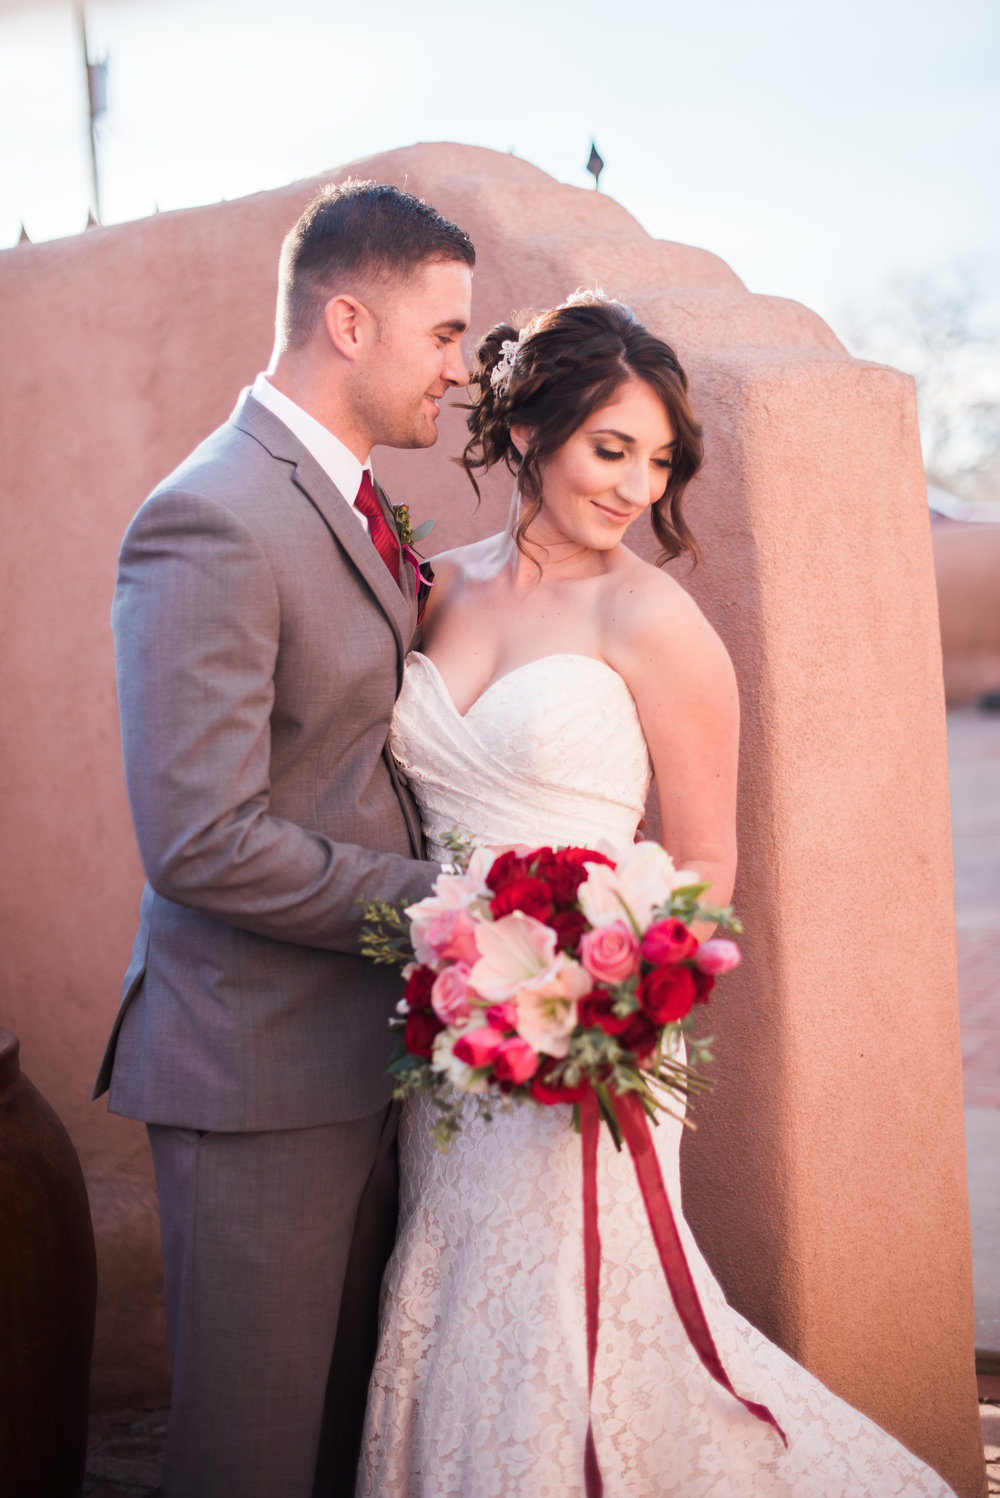 Editorial styled wedding shoot. Bridal hair & makeup, Christy Johnson, C. Johnson Makeup. Styled & coordinated by Just Lovely Weddings & Events. Location: Casa Vieja Event Center, Corrales, New Mexico. Photos by Briana Nicole Photography.